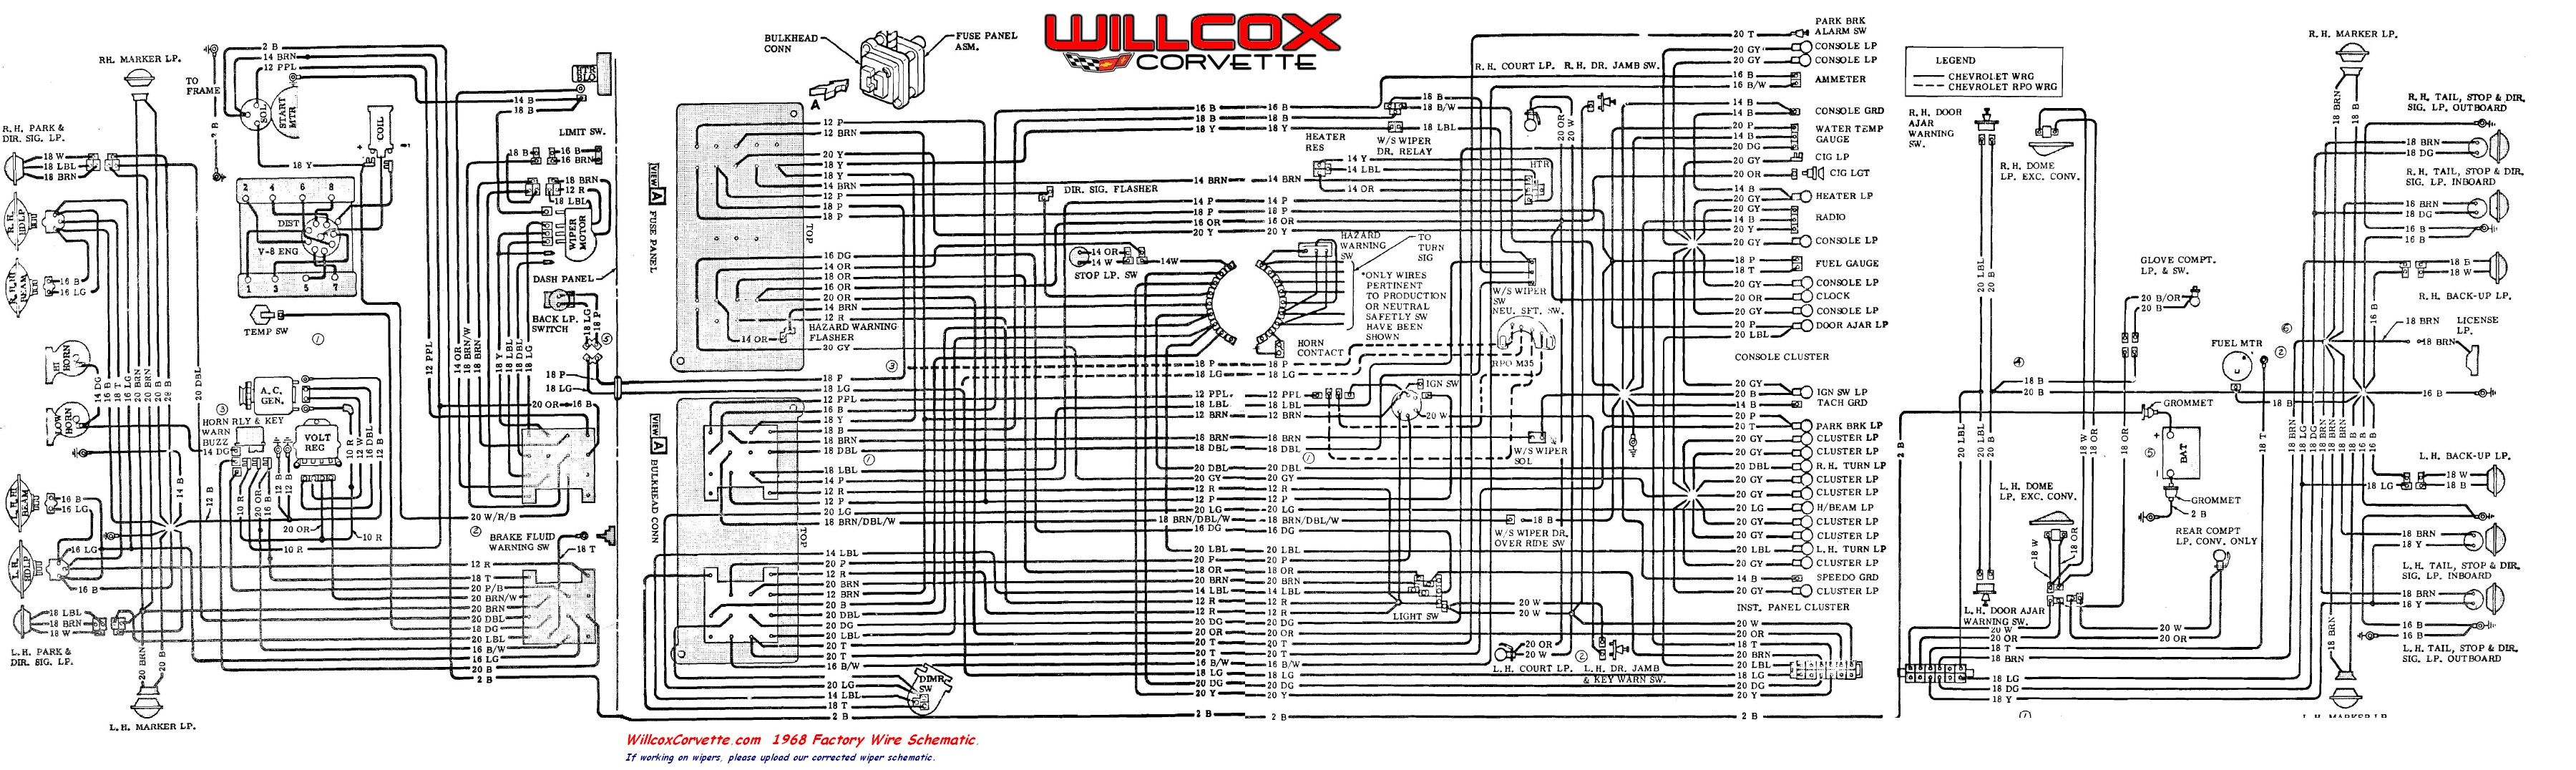 1969 corvette wiper wiring diagram schematic automotive block rh carwiringdiagram today 1979 Corvette Wiring Diagram PDF wiring diagram for 1979 corvette